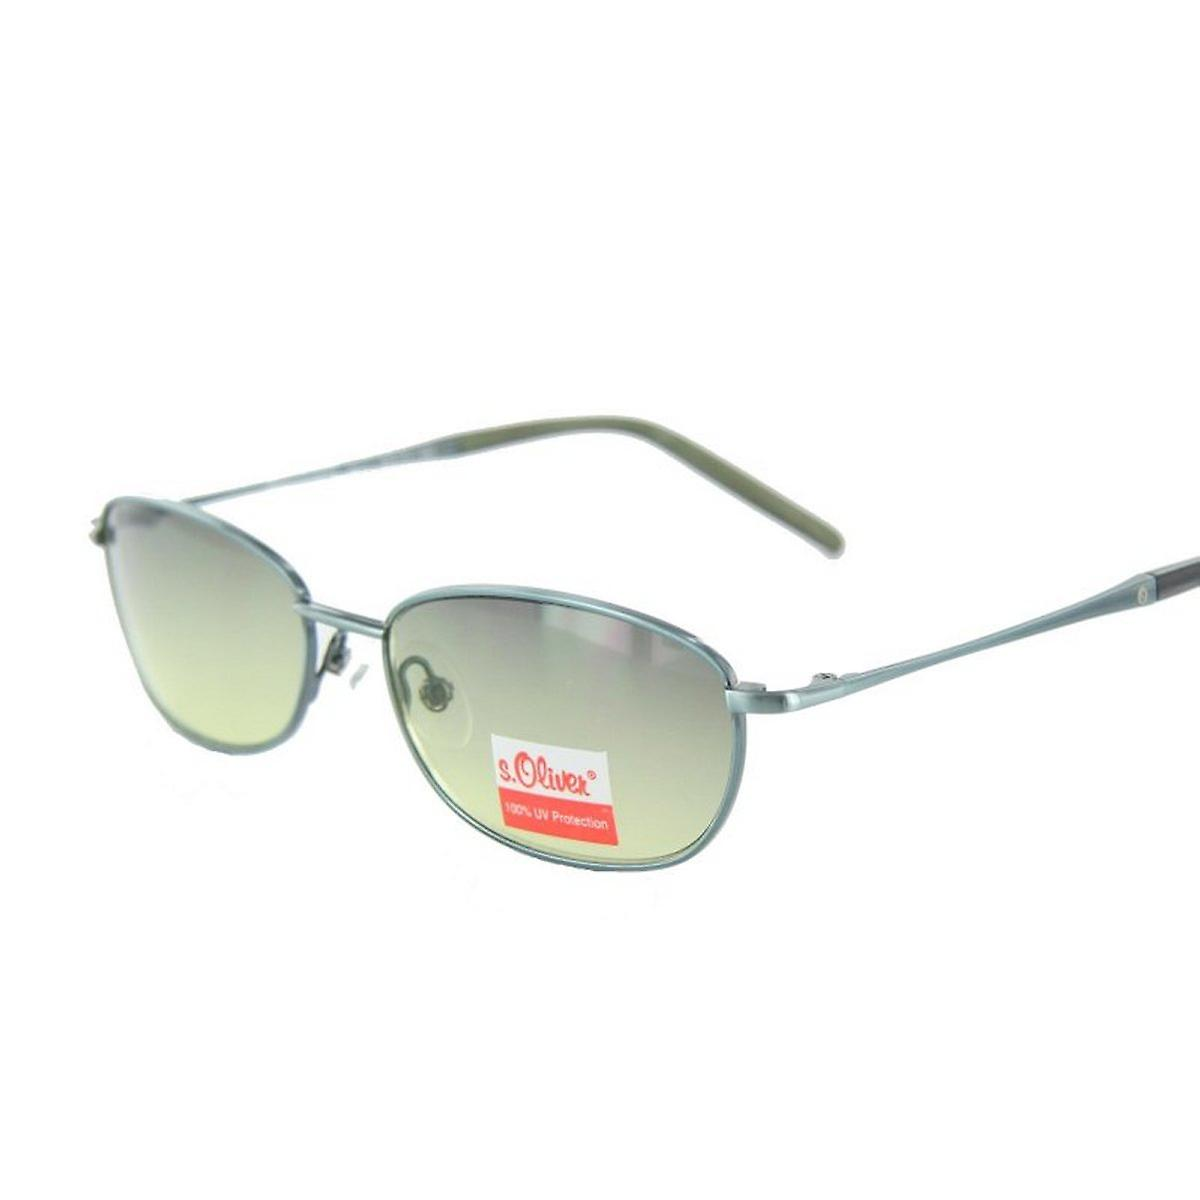 s.Oliver sunglasses 4073 C3 light green SO40733